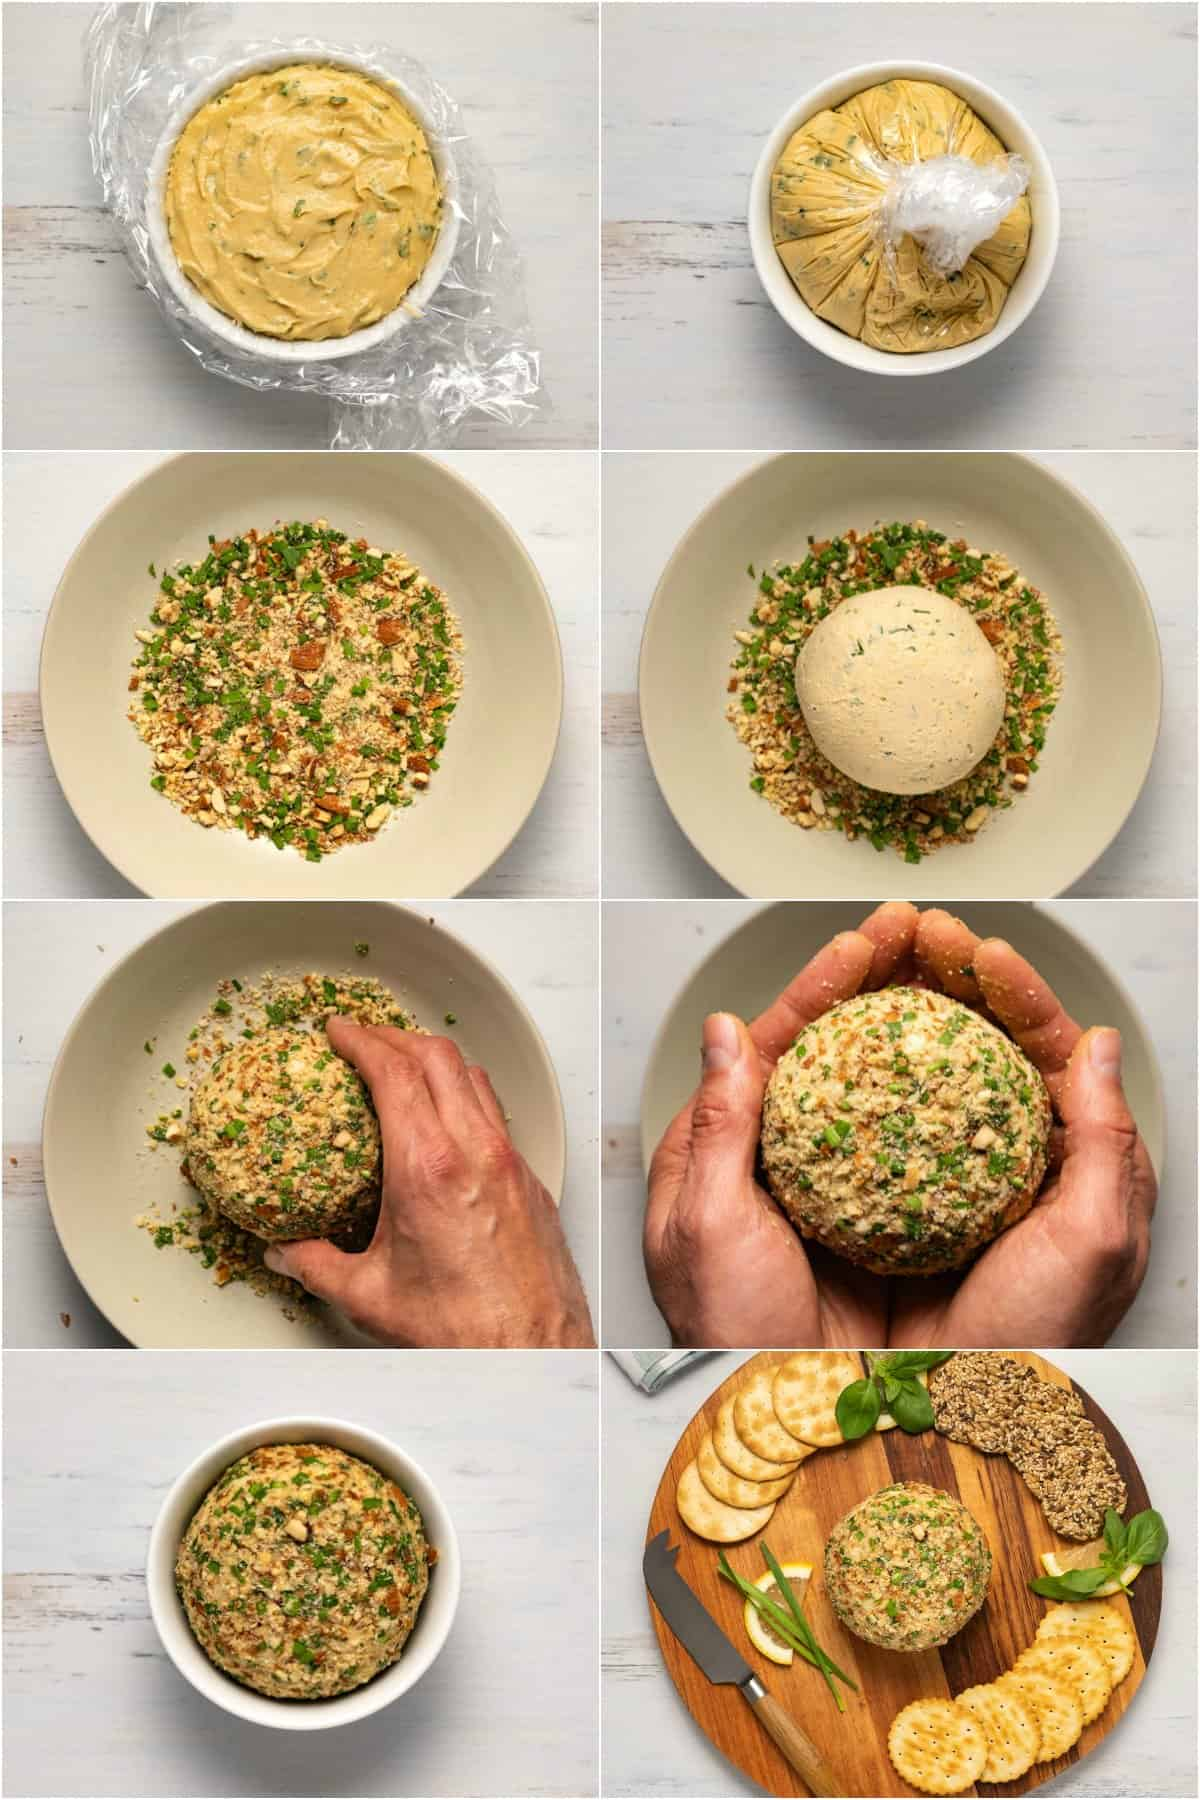 Step by step process photo collage of a vegan cheese ball being prepared.